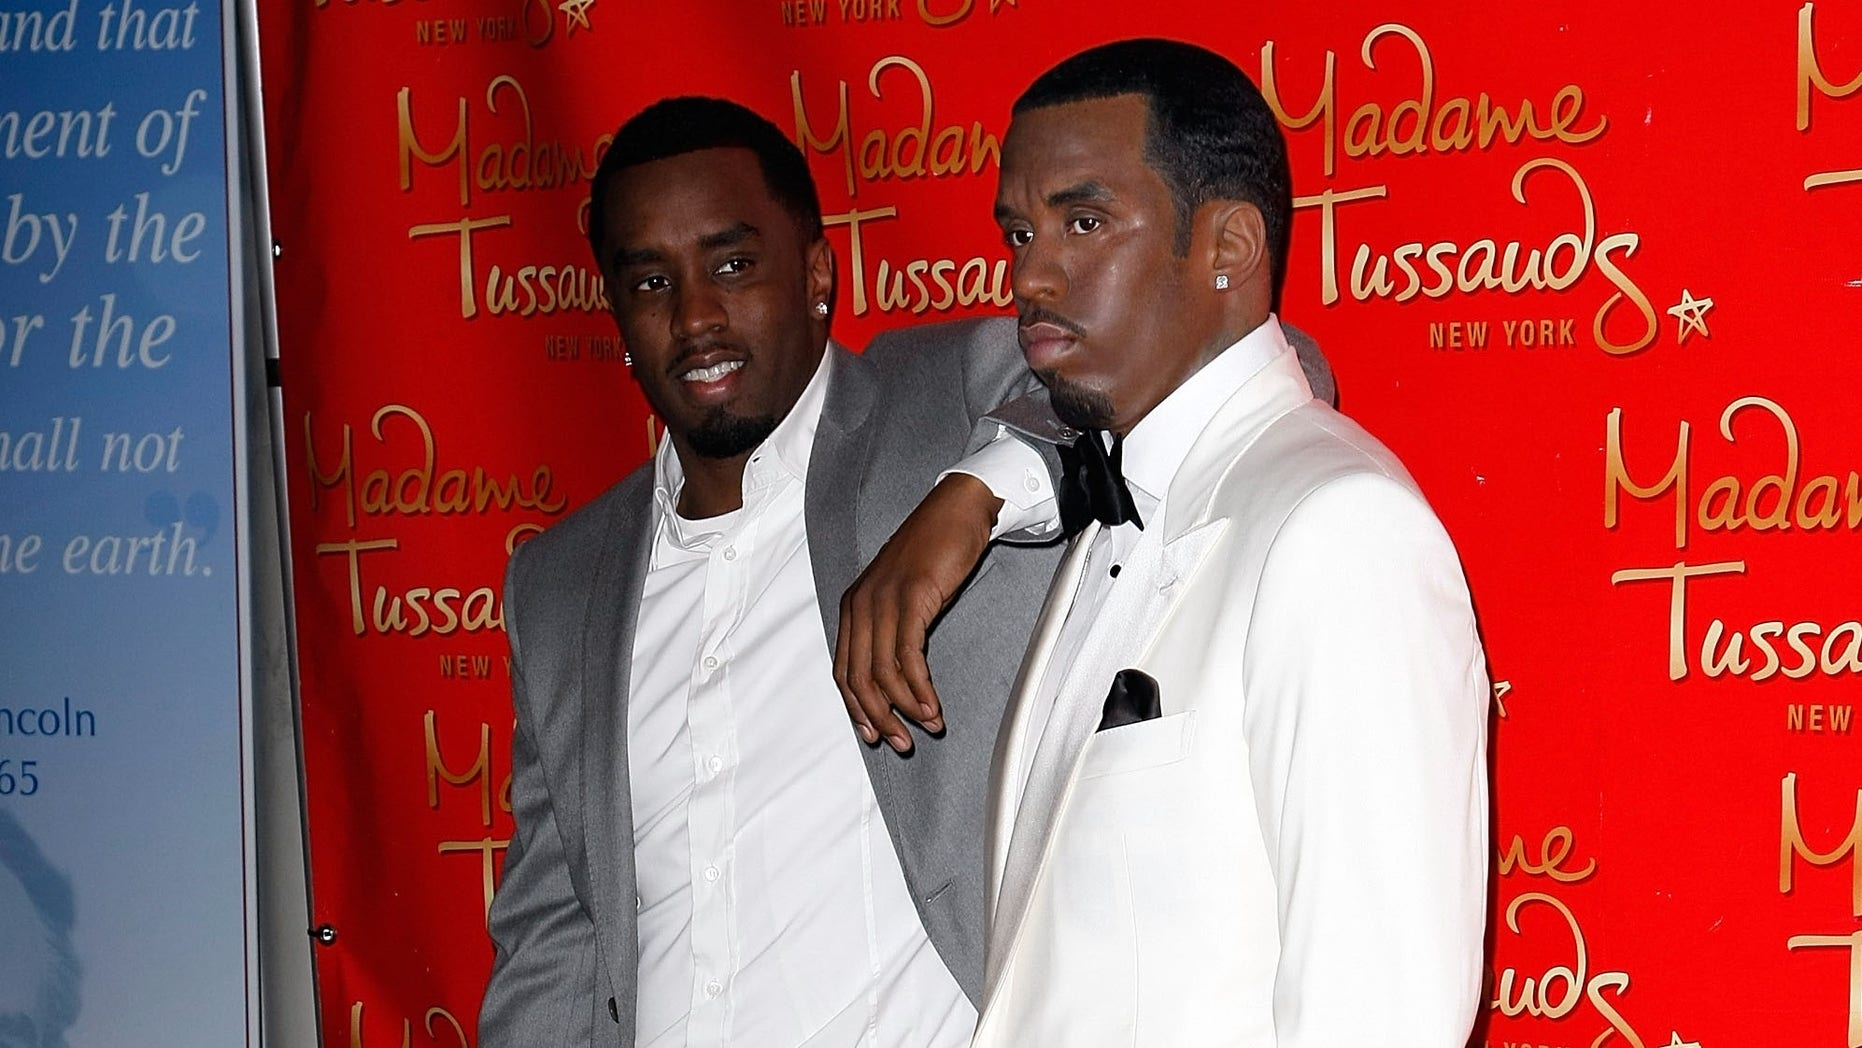 """Sean """"Diddy"""" Combs' wax figure was damaged on Saturday, police said."""